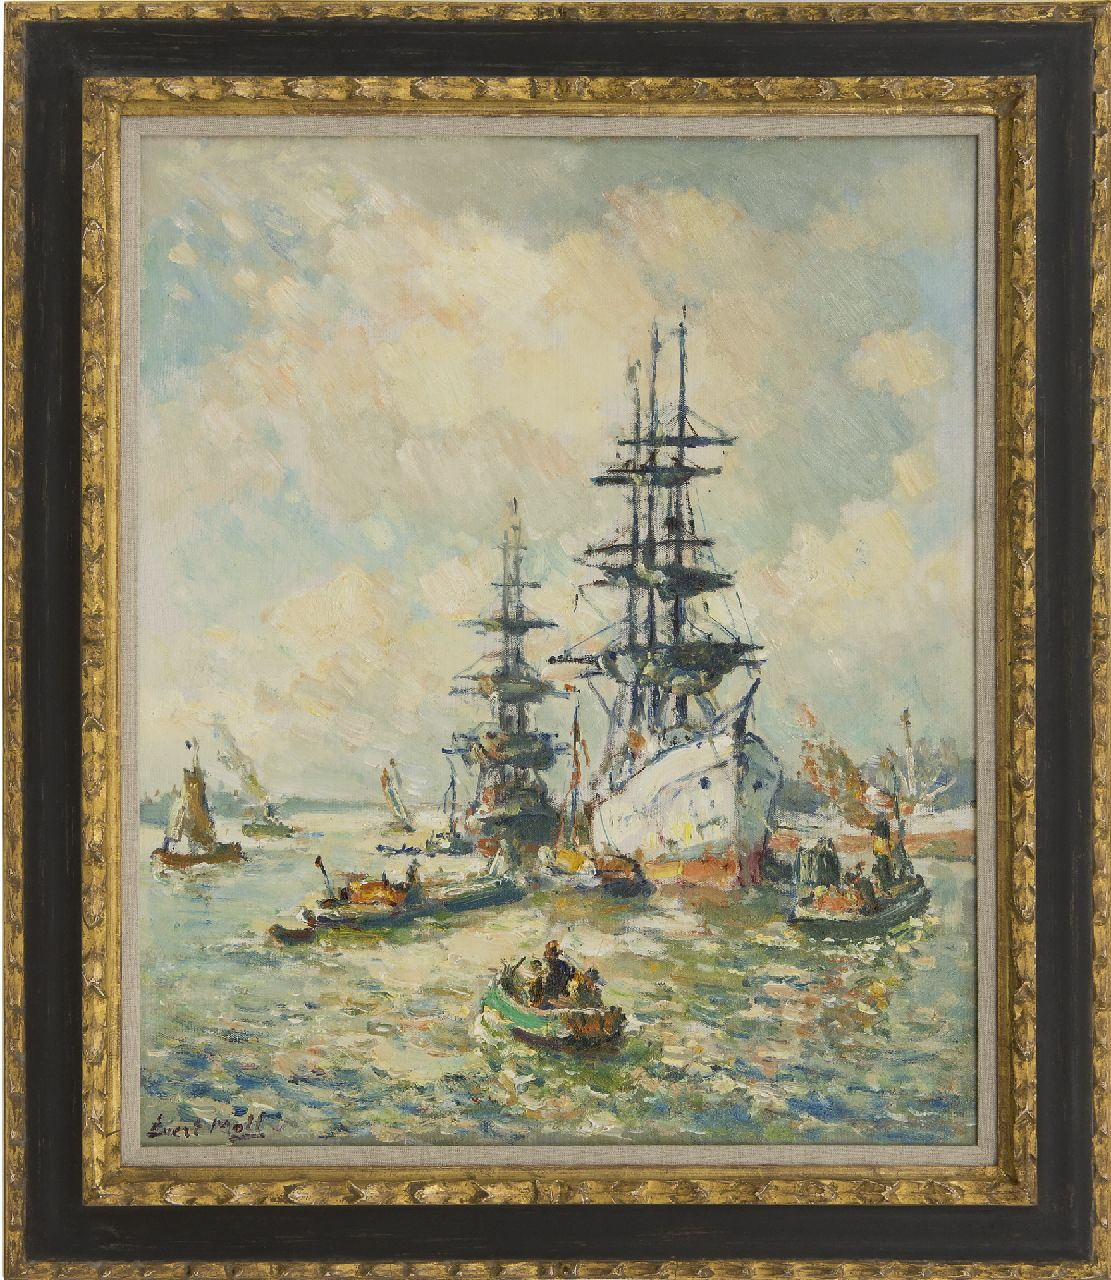 Moll E.  | Evert Moll | Paintings offered for sale | Three-masters in the Rotterdam harbour, oil on canvas 60.2 x 50.2 cm, signed l.l.